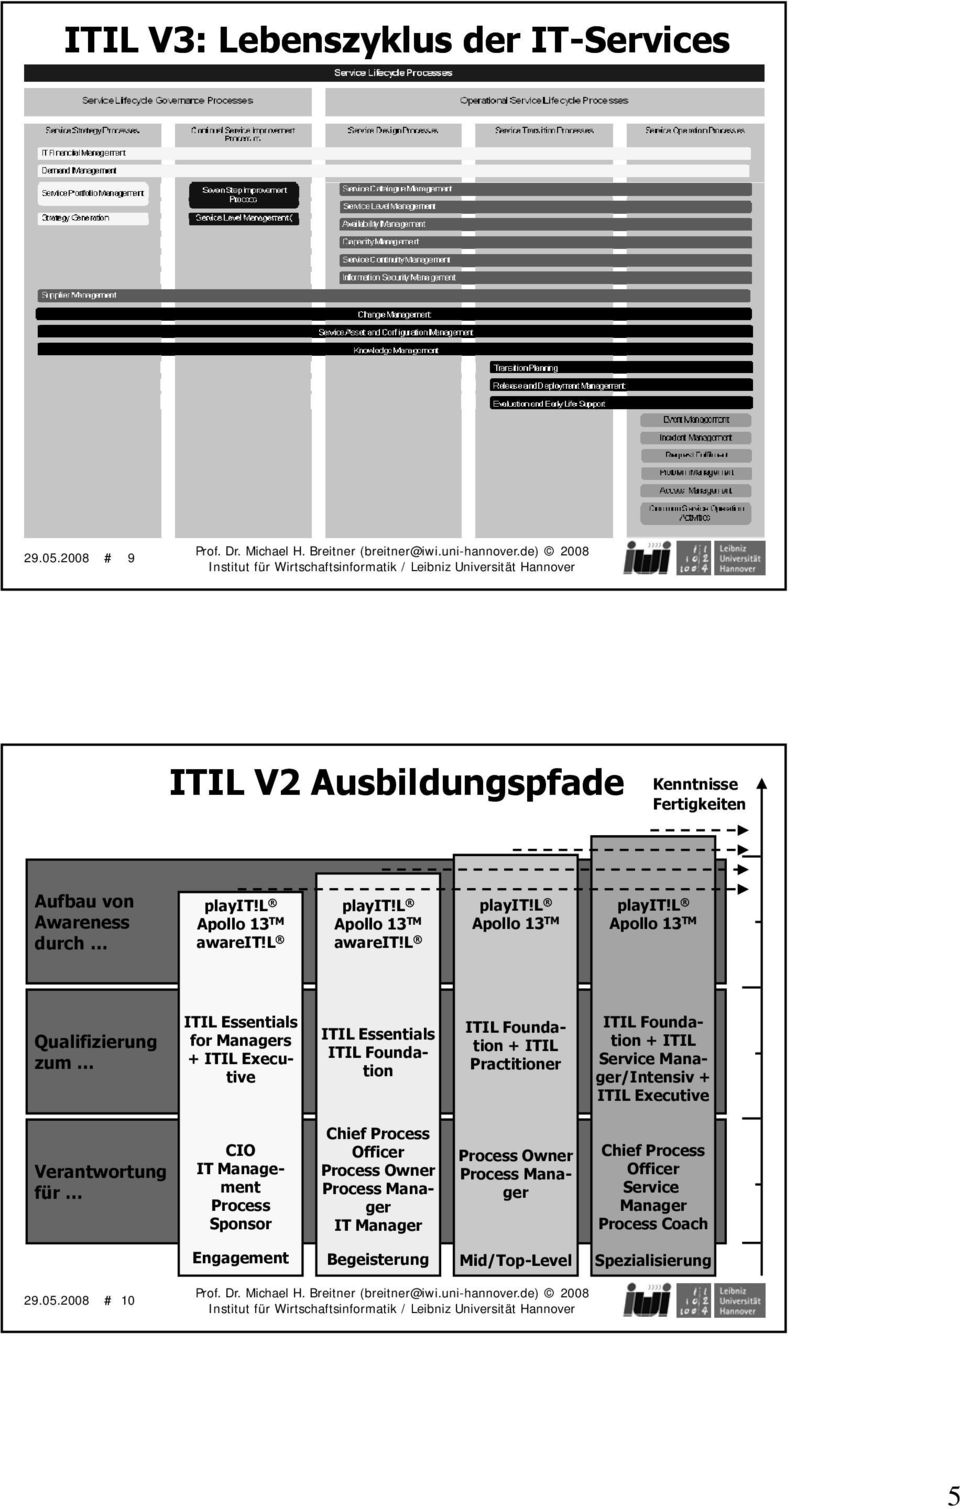 l Apollo 13 TM Qualifizierung zum ITIL Essentials for Managers + ITIL Executive ITIL Essentials ITIL Foundation ITIL Foundation + ITIL Practitioner ITIL Foundation + ITIL